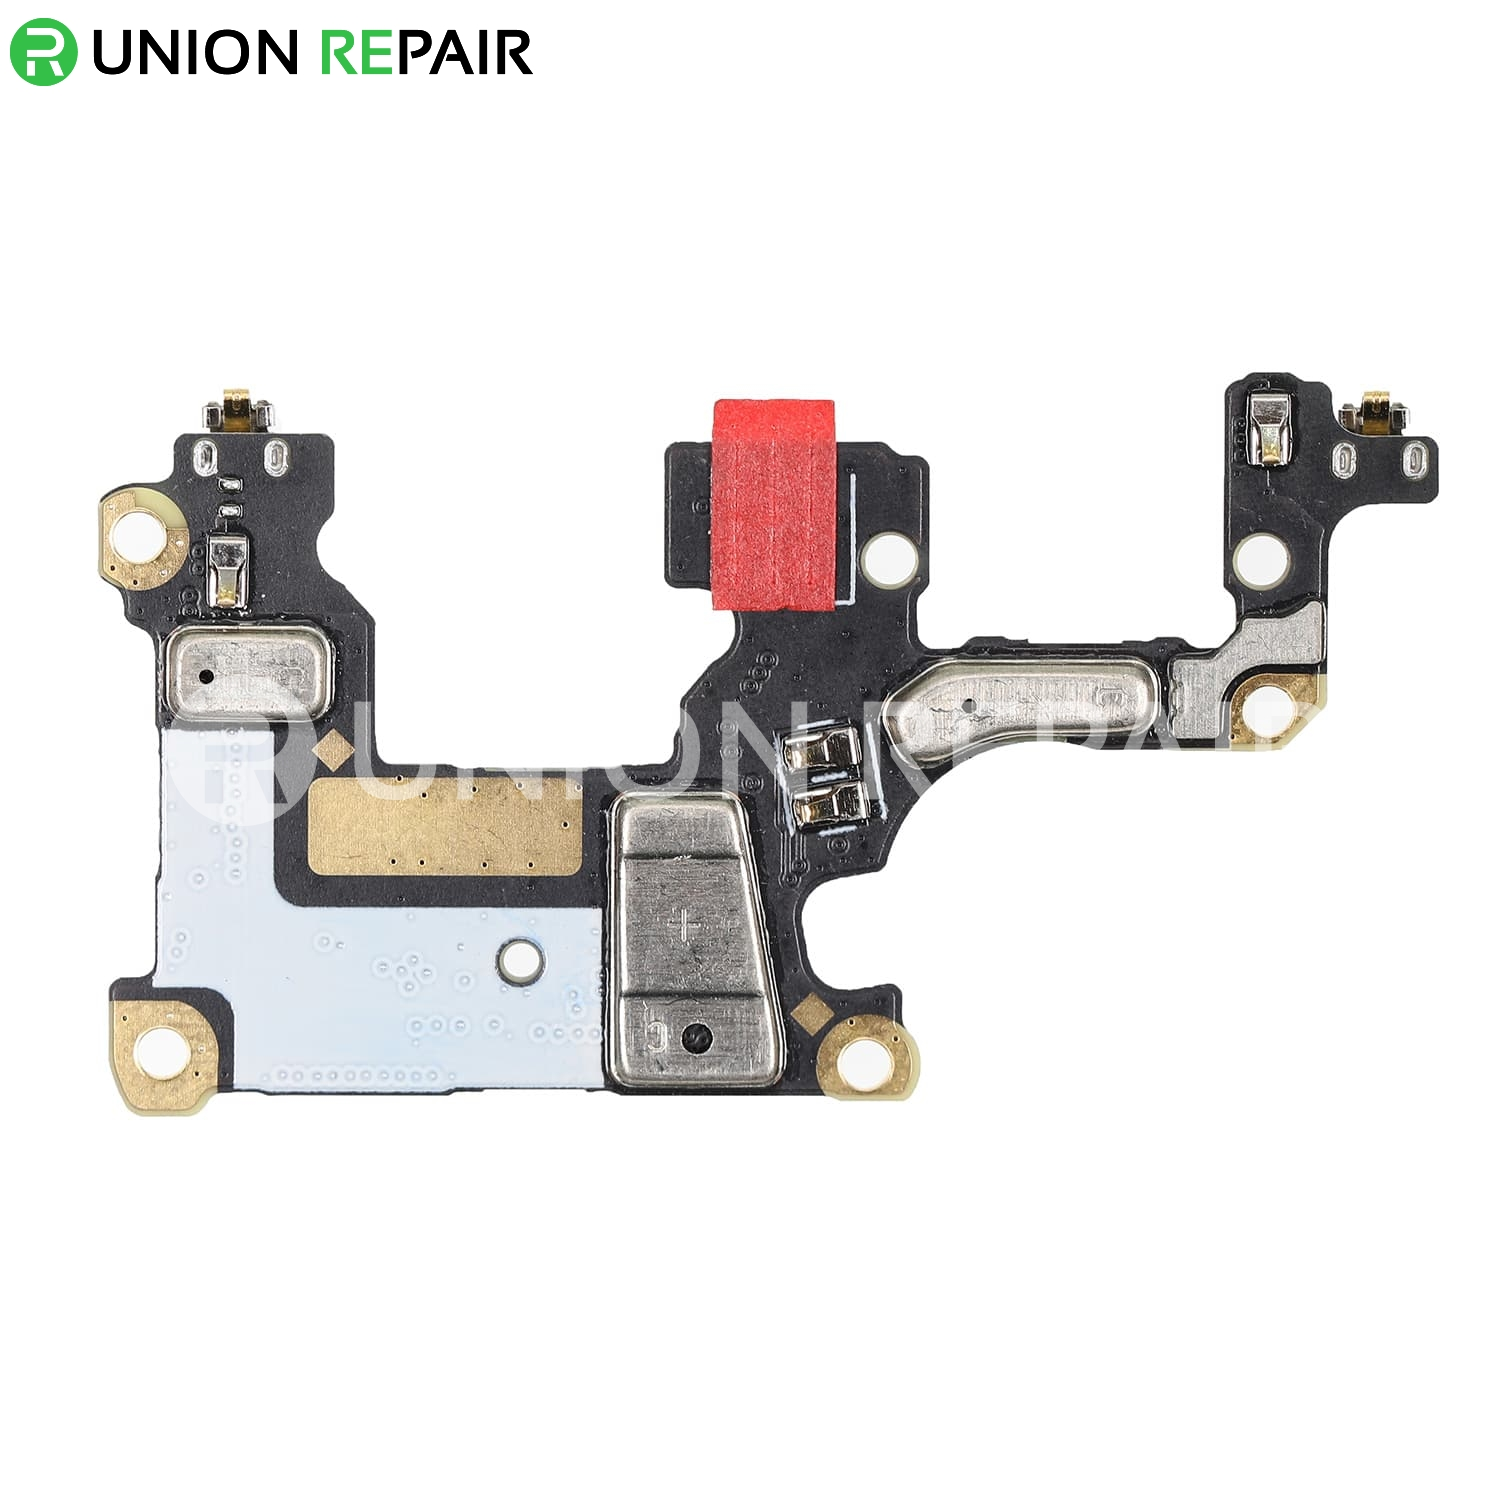 Replacement for OPPO R15 Pro Microphone Flex Board, fig. 2